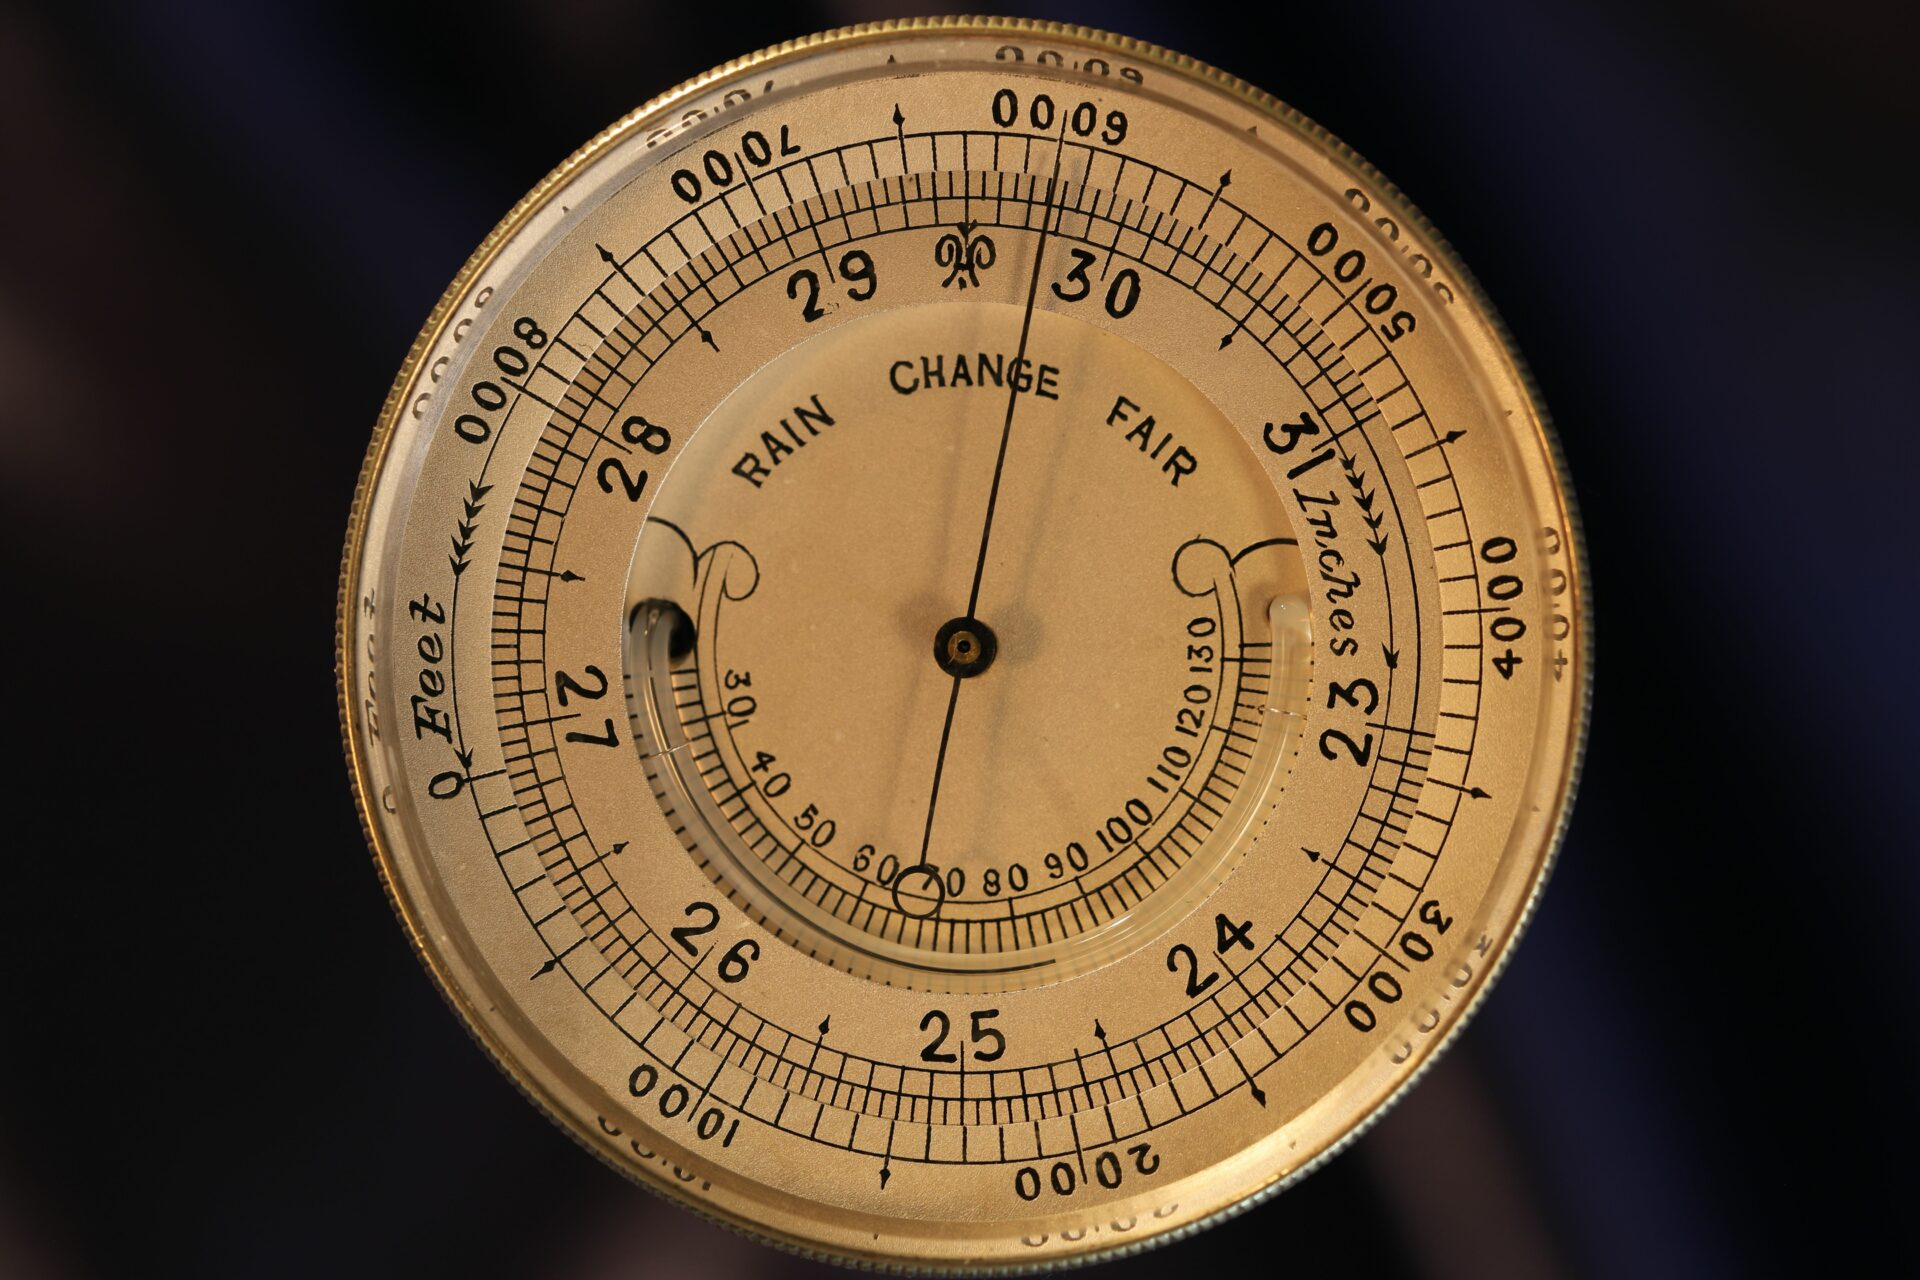 Image of the dial of Silver Pocket Barometer Compendium by Thornhill c1899